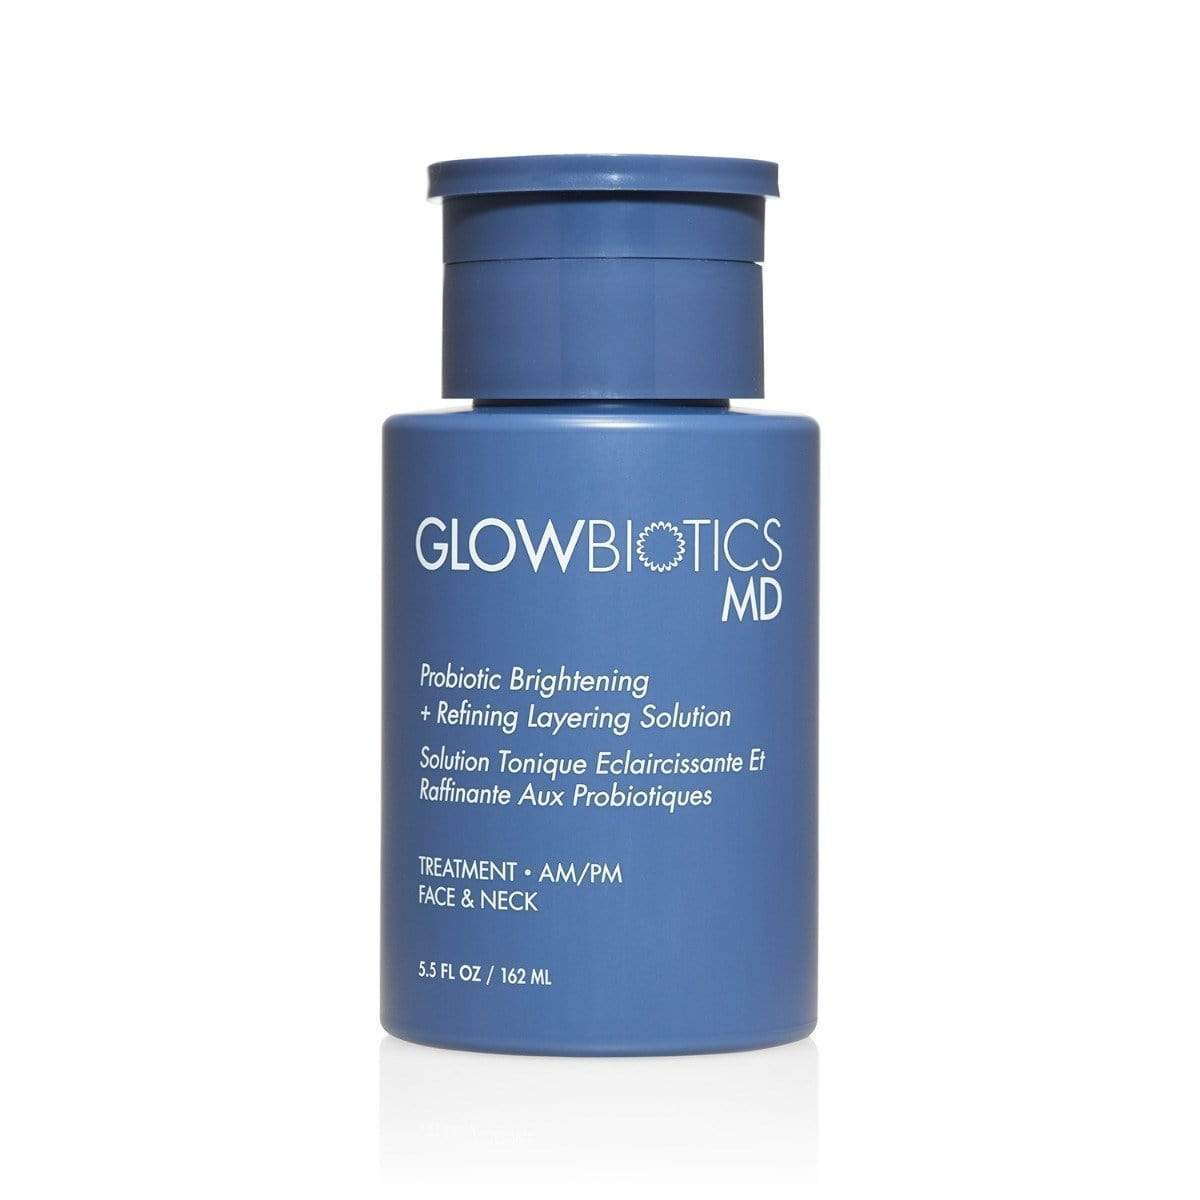 Glowbiotics MD Probiotic Brightening + Refining Layering Solution in a Blue Bottle 5.5 fl oz